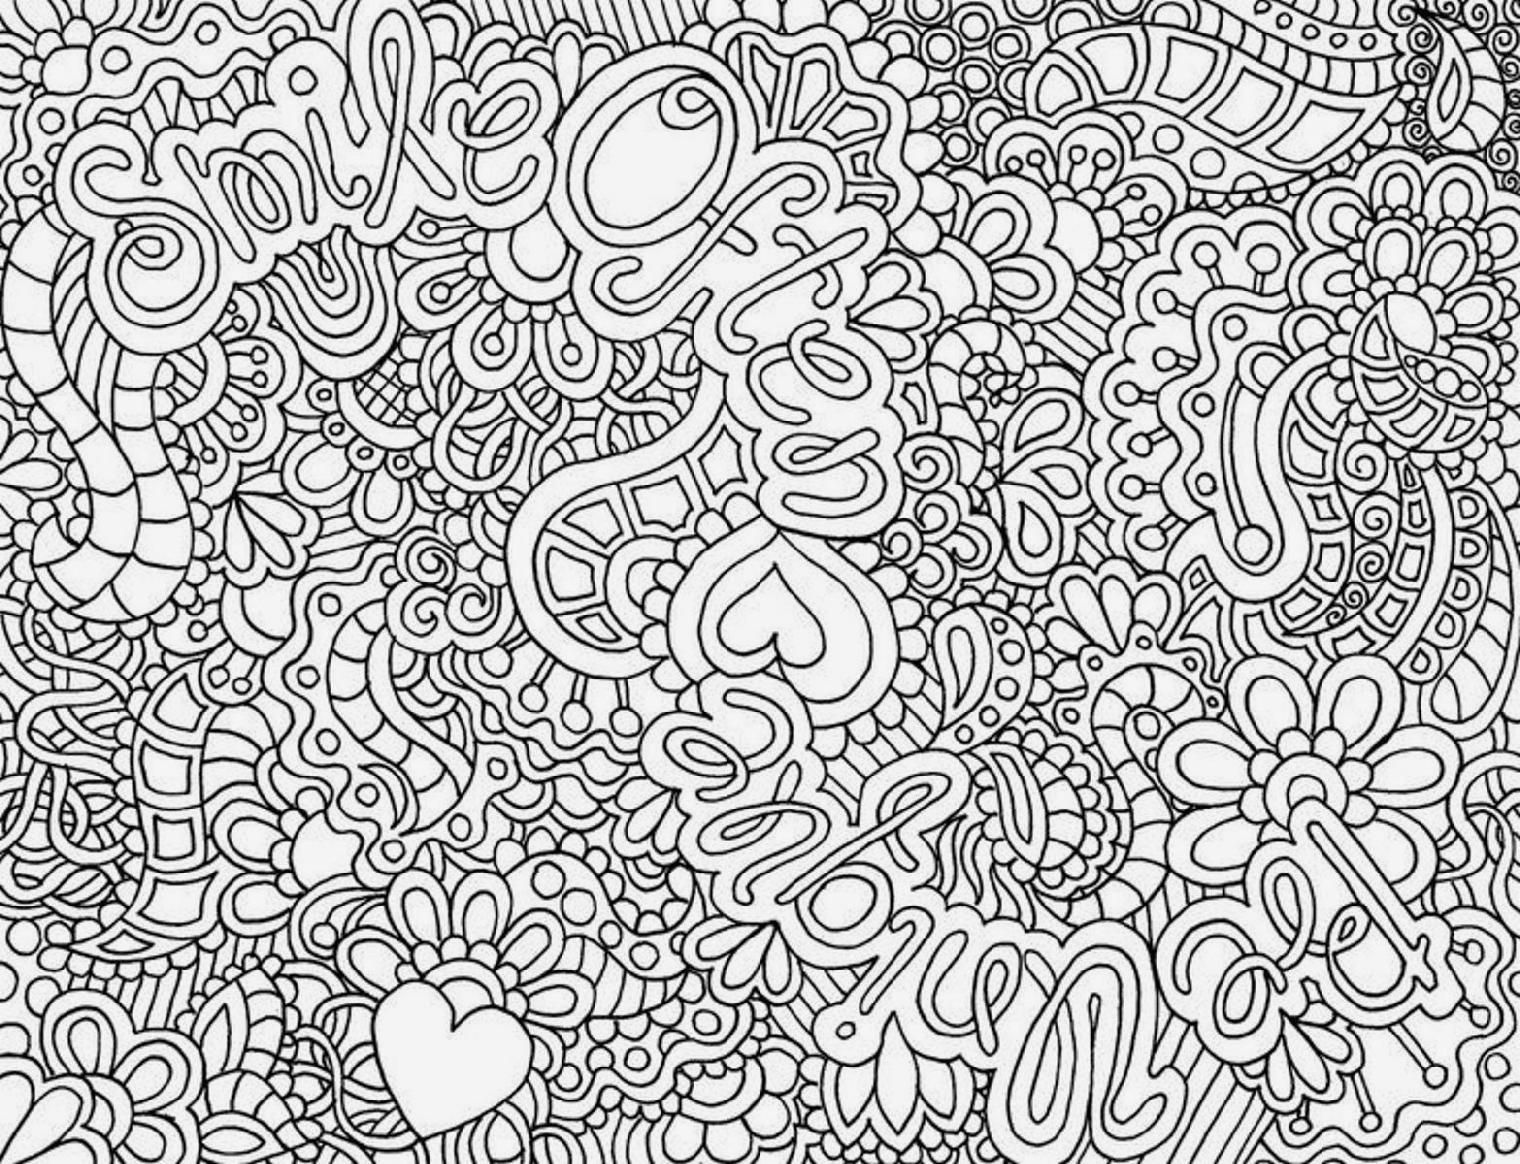 Fr free printable adult coloring pages online - These Free Printable Coloring Book Pages Of Flowers Provide Hours Of Online And